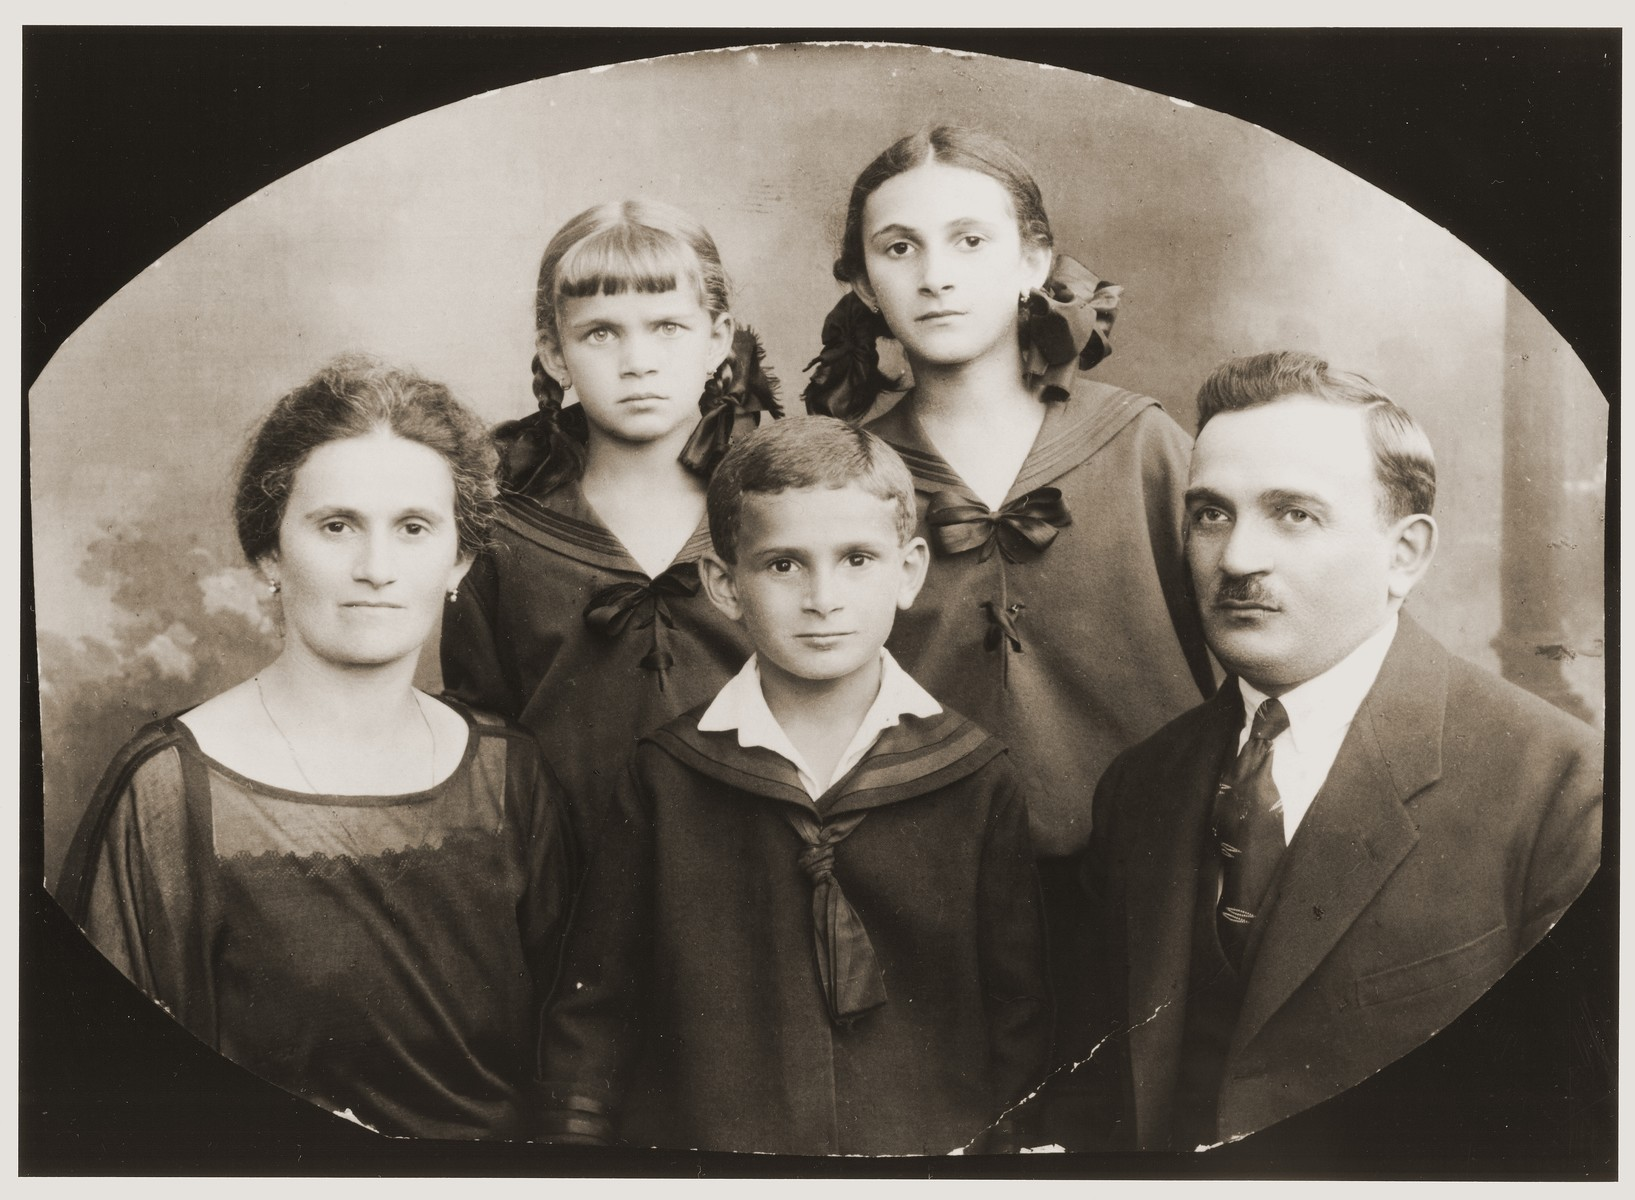 Studio portrait of the Senenseib family, all of whom later perished in Auschwitz.  Pictured from left to right are: Regina Rosenheck Senenseib, Clarzia Senenseib, Mundic Senenseib, Fridka Senenseib, and Abraham Senenseib.  The Senenseib family were relatives of the donor, Frieda Brender.